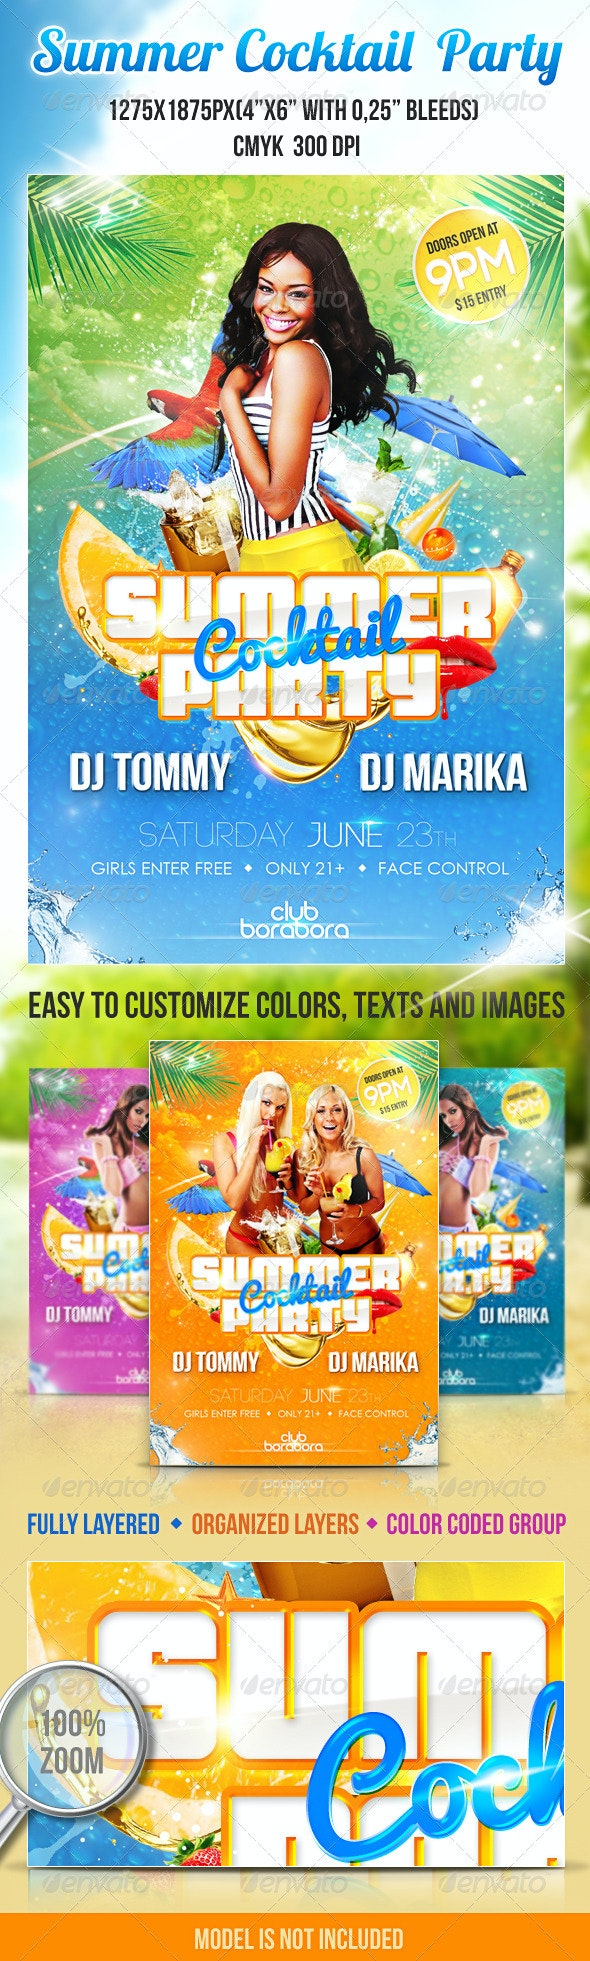 Summer Cocktail Party PSD Flyer Template - Clubs & Parties Events